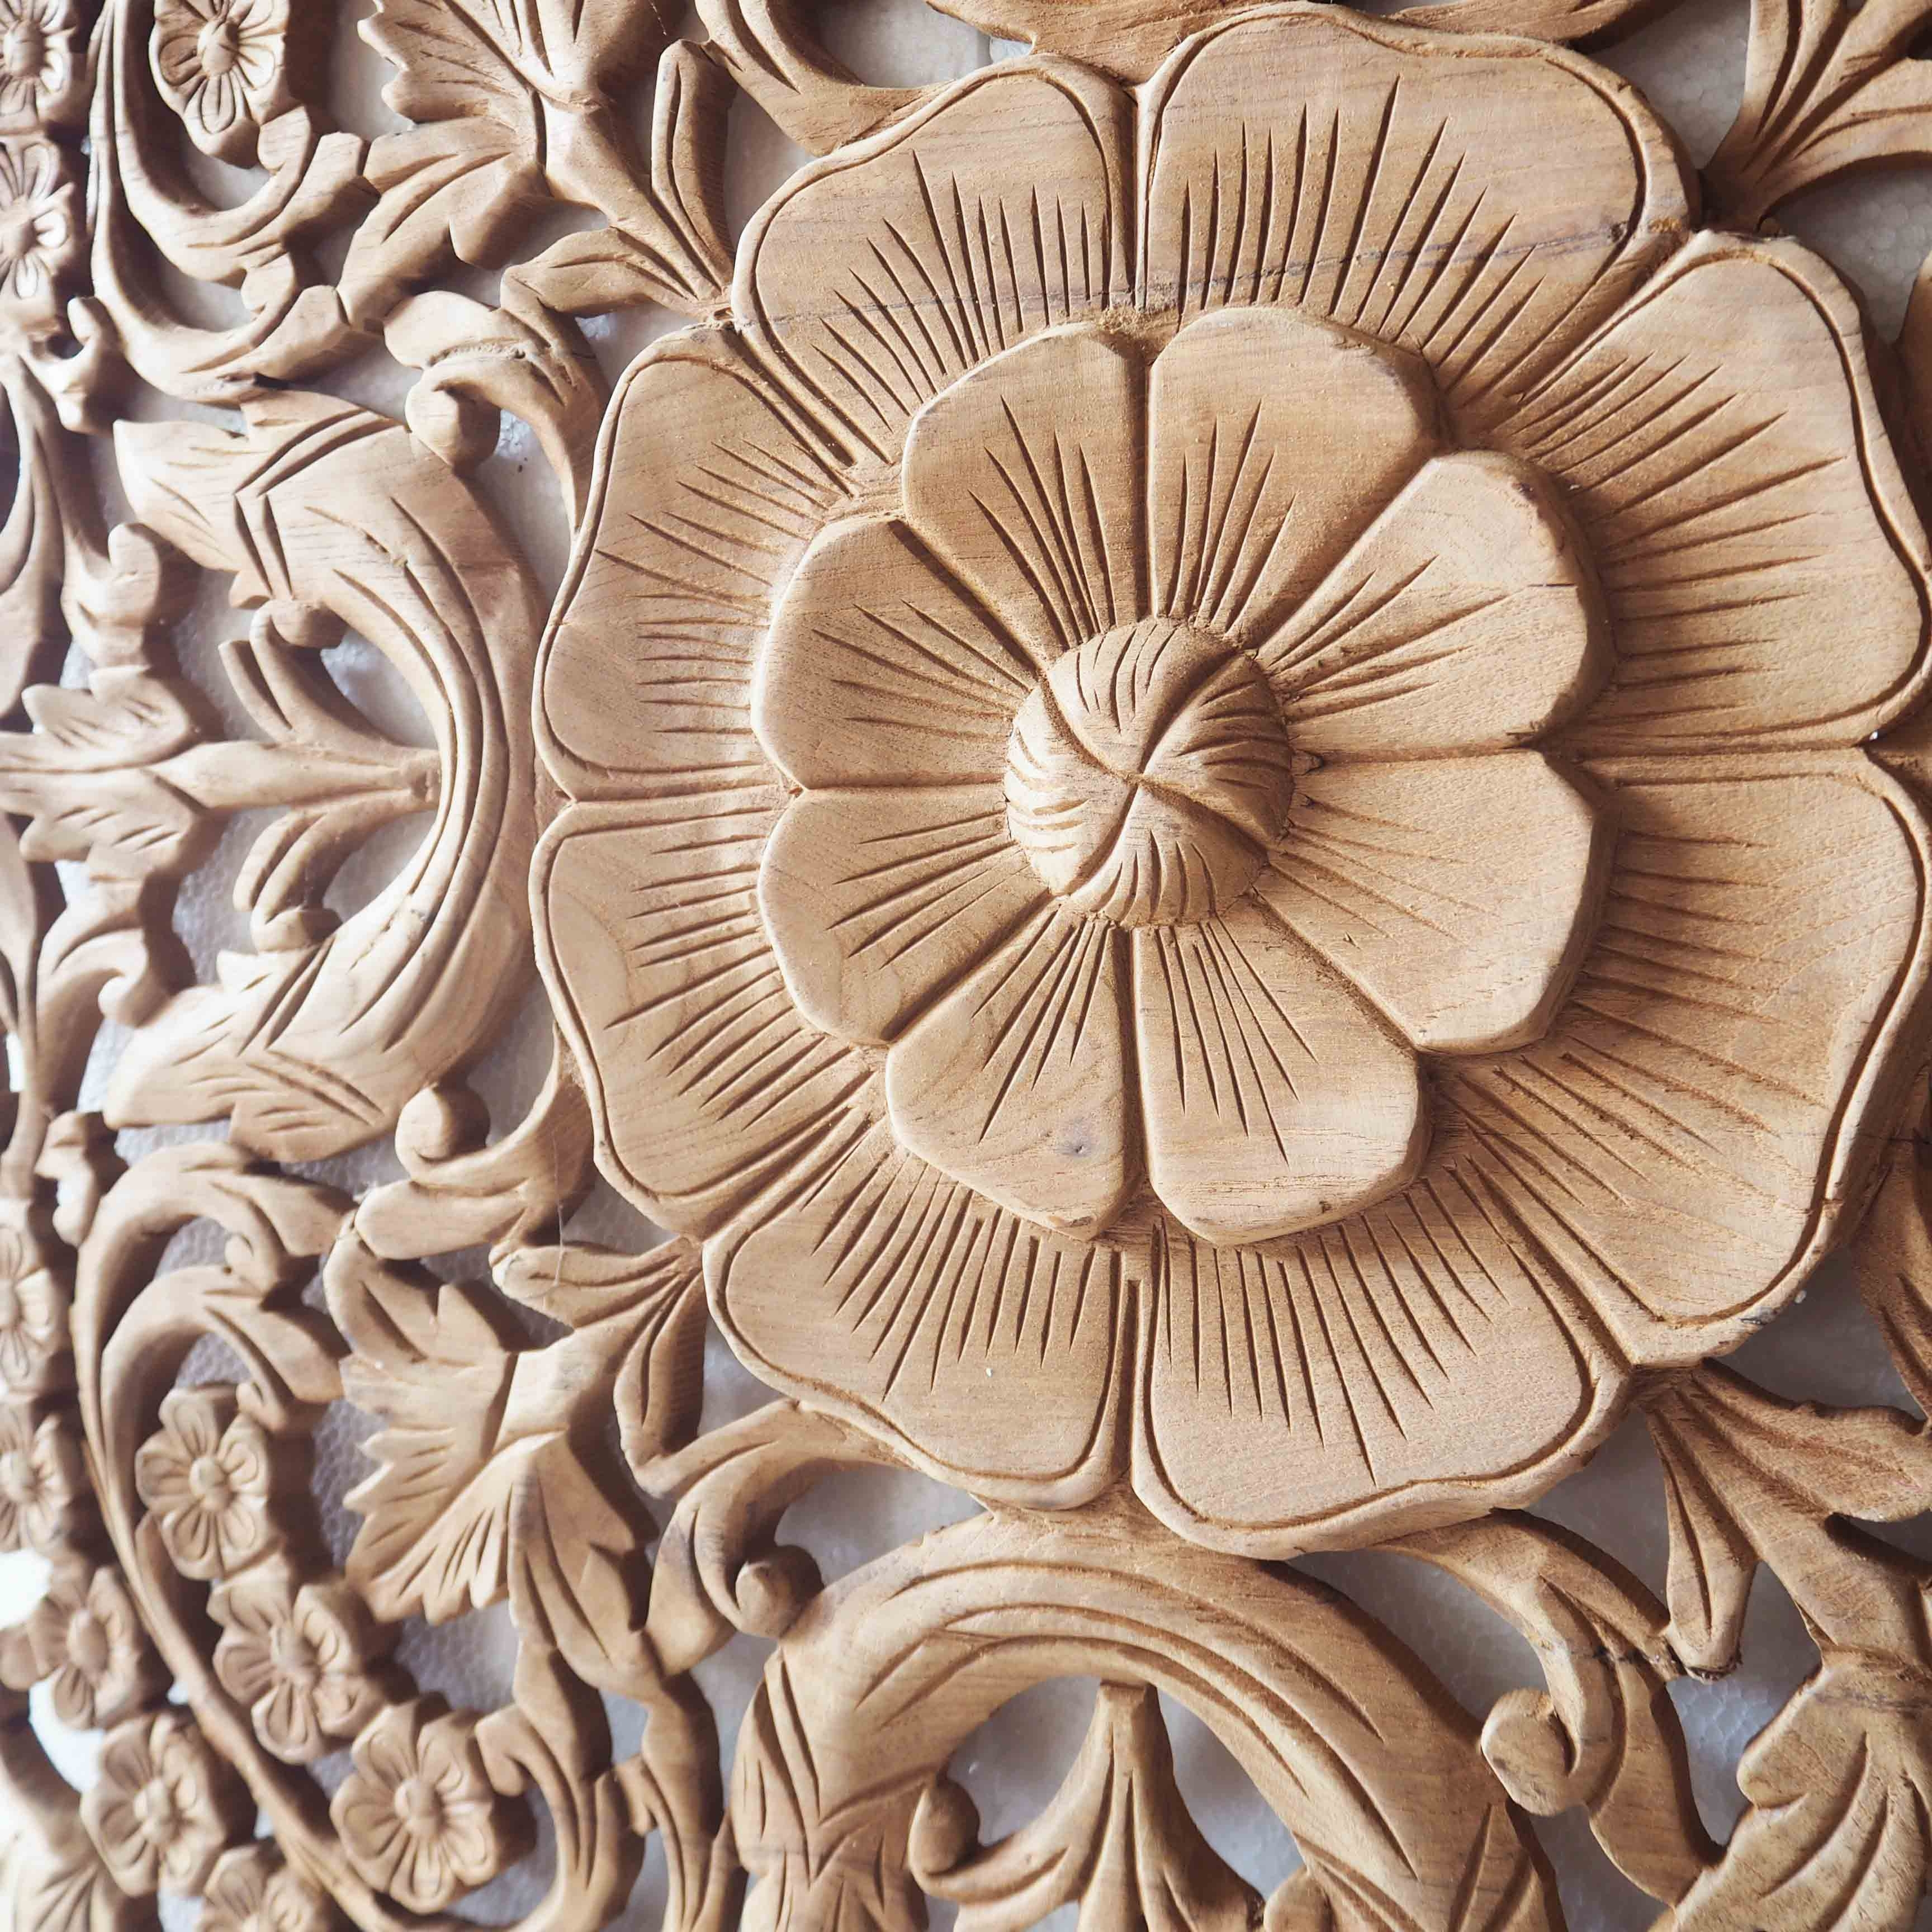 Carving-Wall-Decor-Carved-Wood-Wall-Art-Panel-Wall-Hanging-Teak regarding Carved Wood Wall Art (Image 10 of 20)